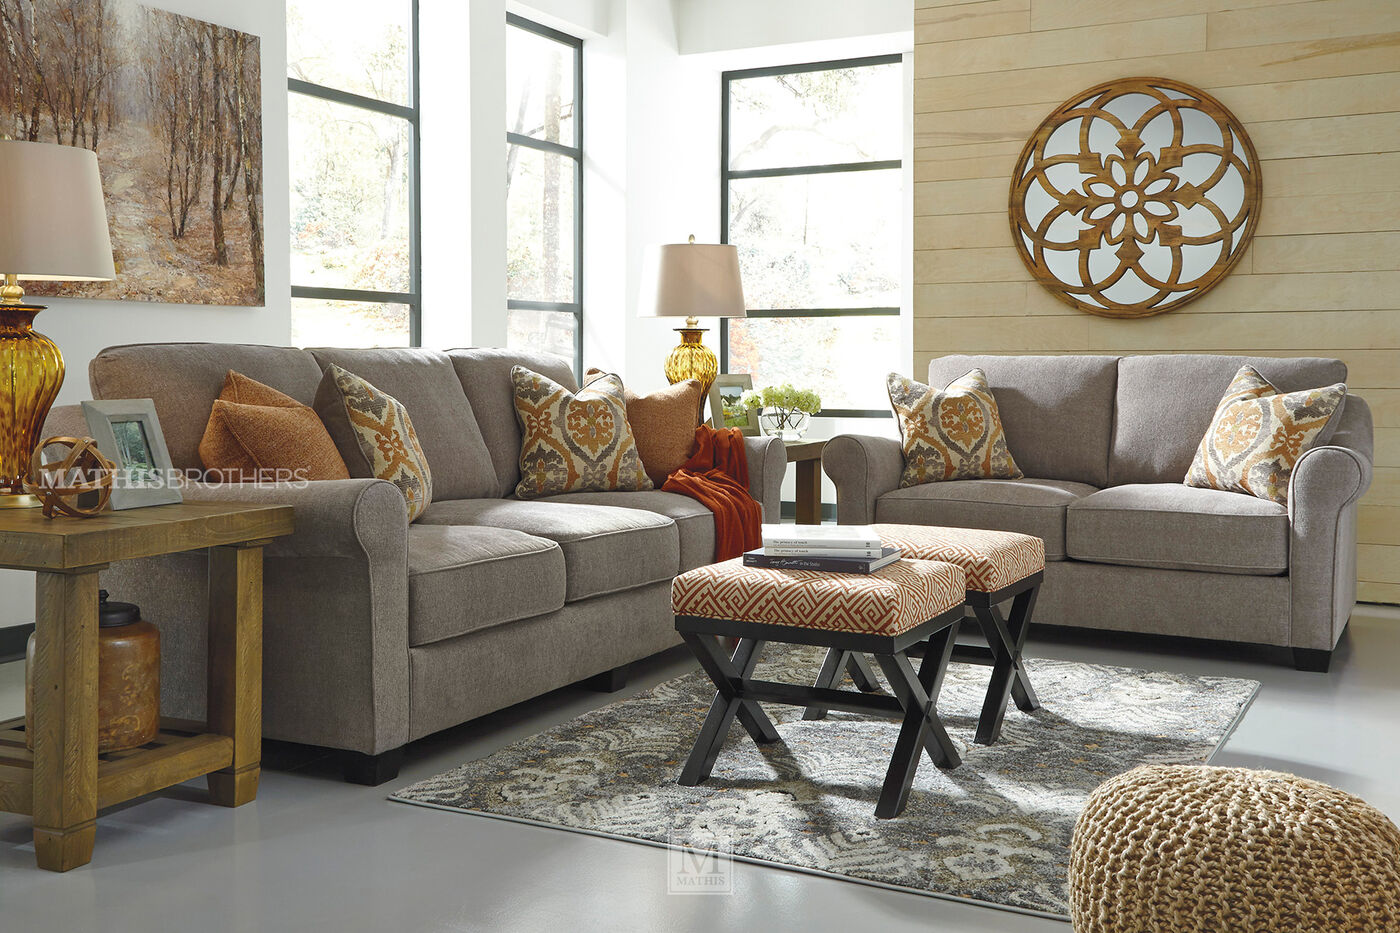 Ultra plush 95 sofa in slate mathis brothers furniture for Plush living room furniture